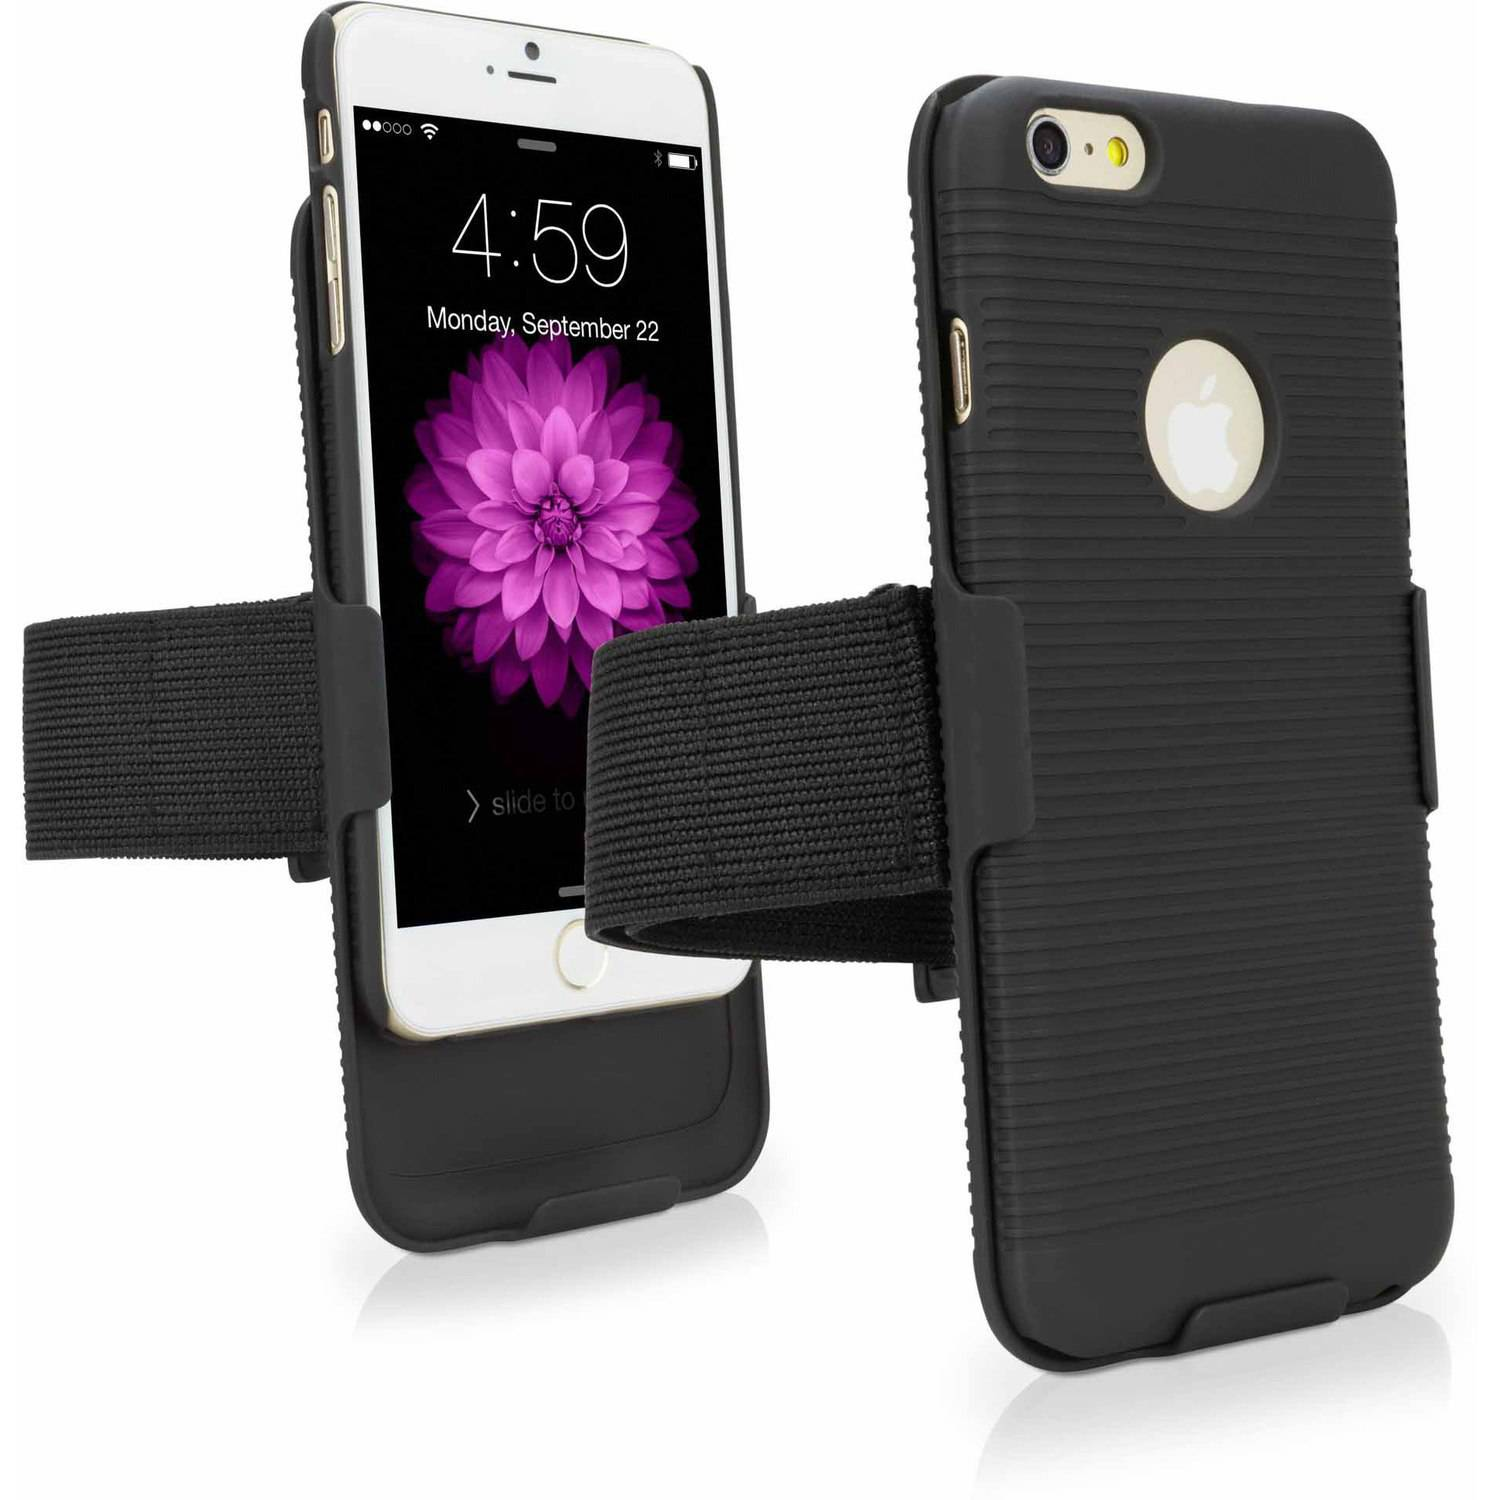 BoxWave Armband Holster for Apple iPhone 6/6s